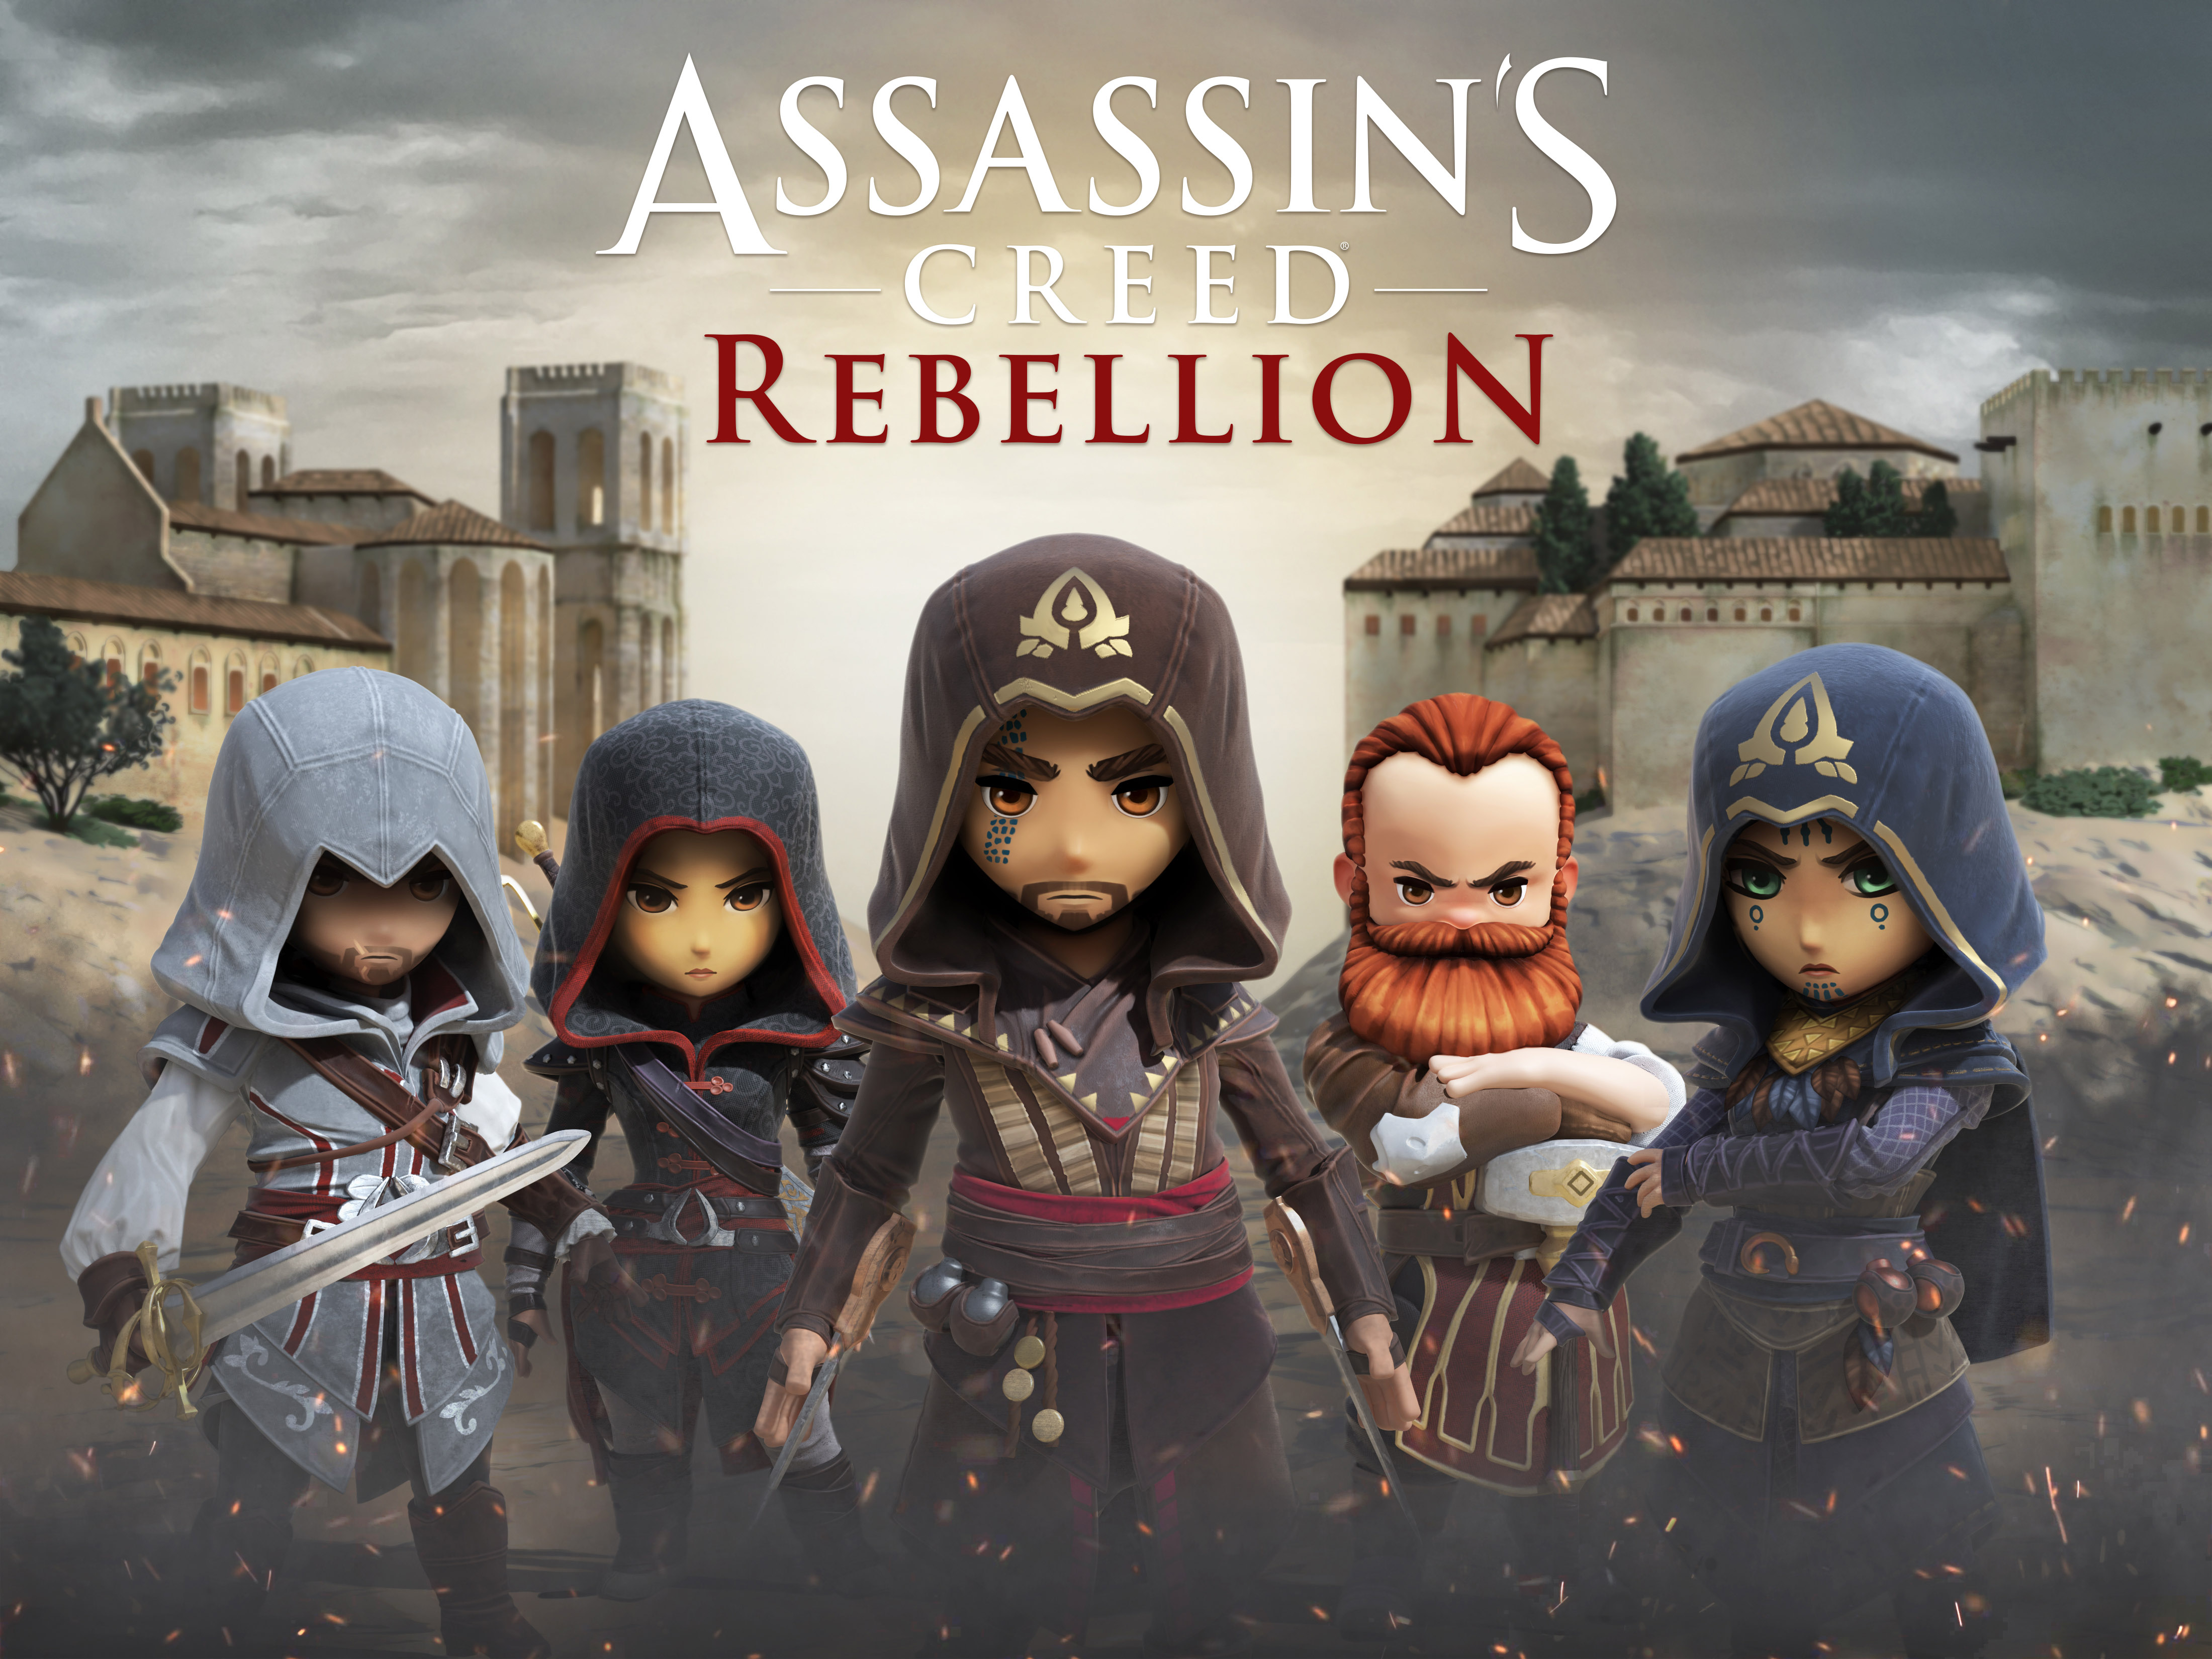 Upcoming Assassin's Creed Mobile Game Will be Free to Play